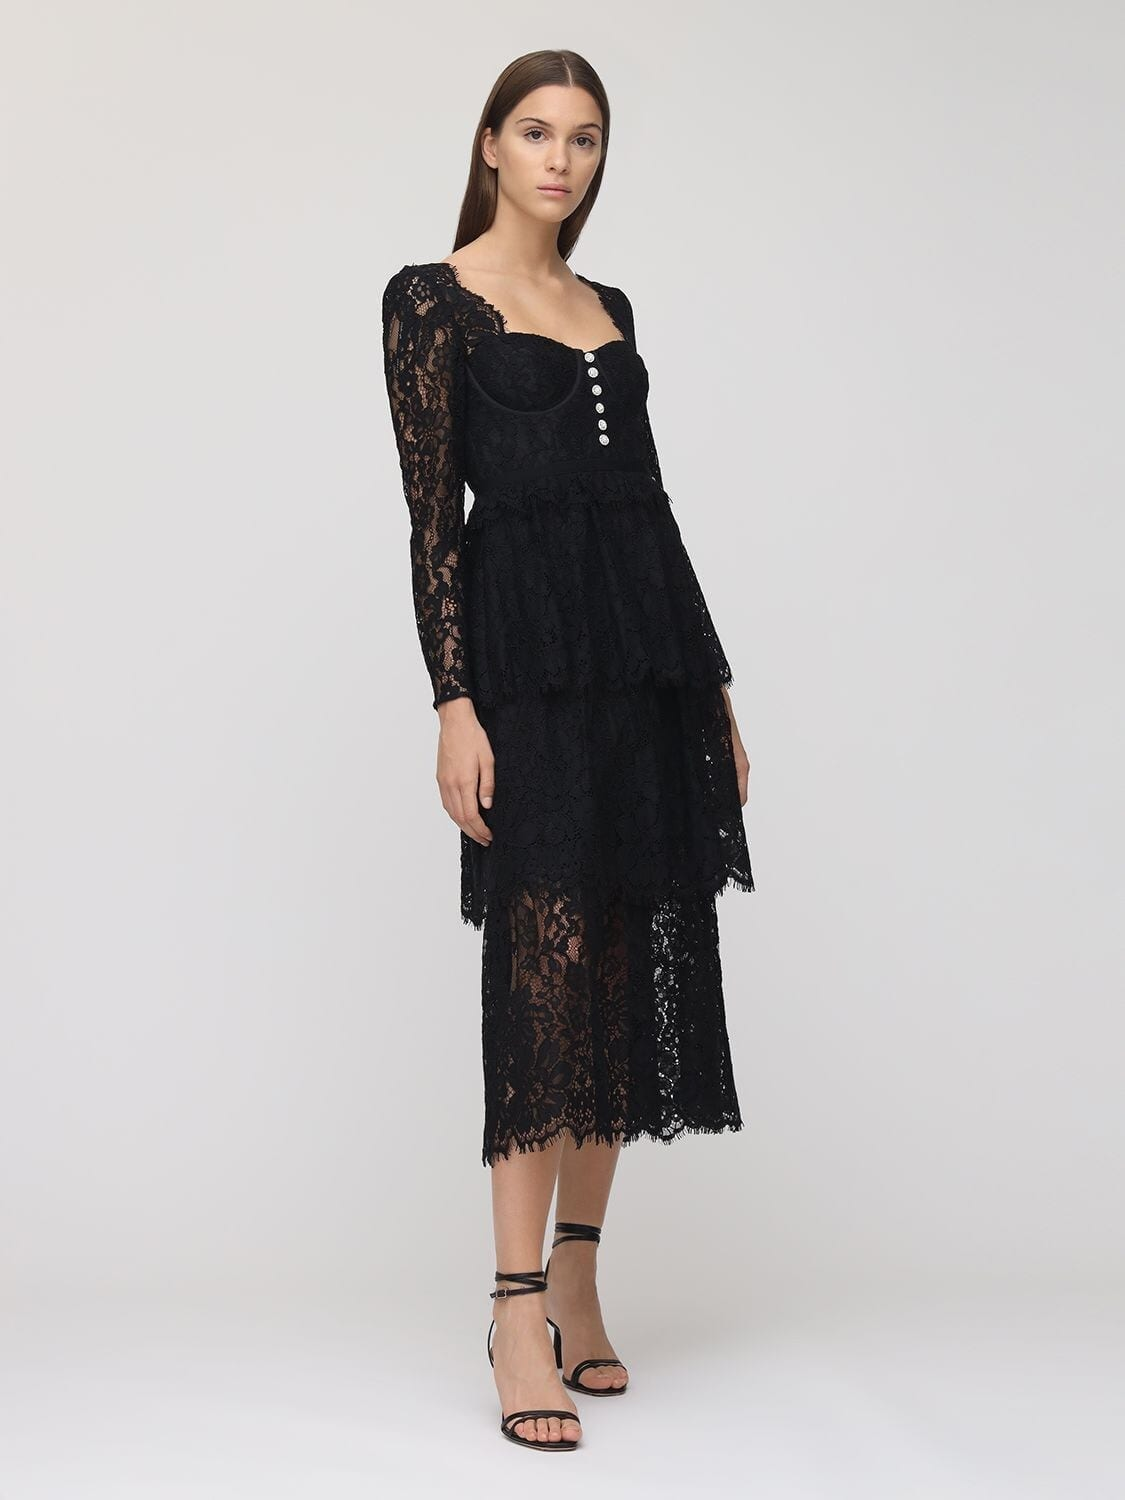 SELF-PORTRAIT Embellished Cotton Blend Lace Midi Dress